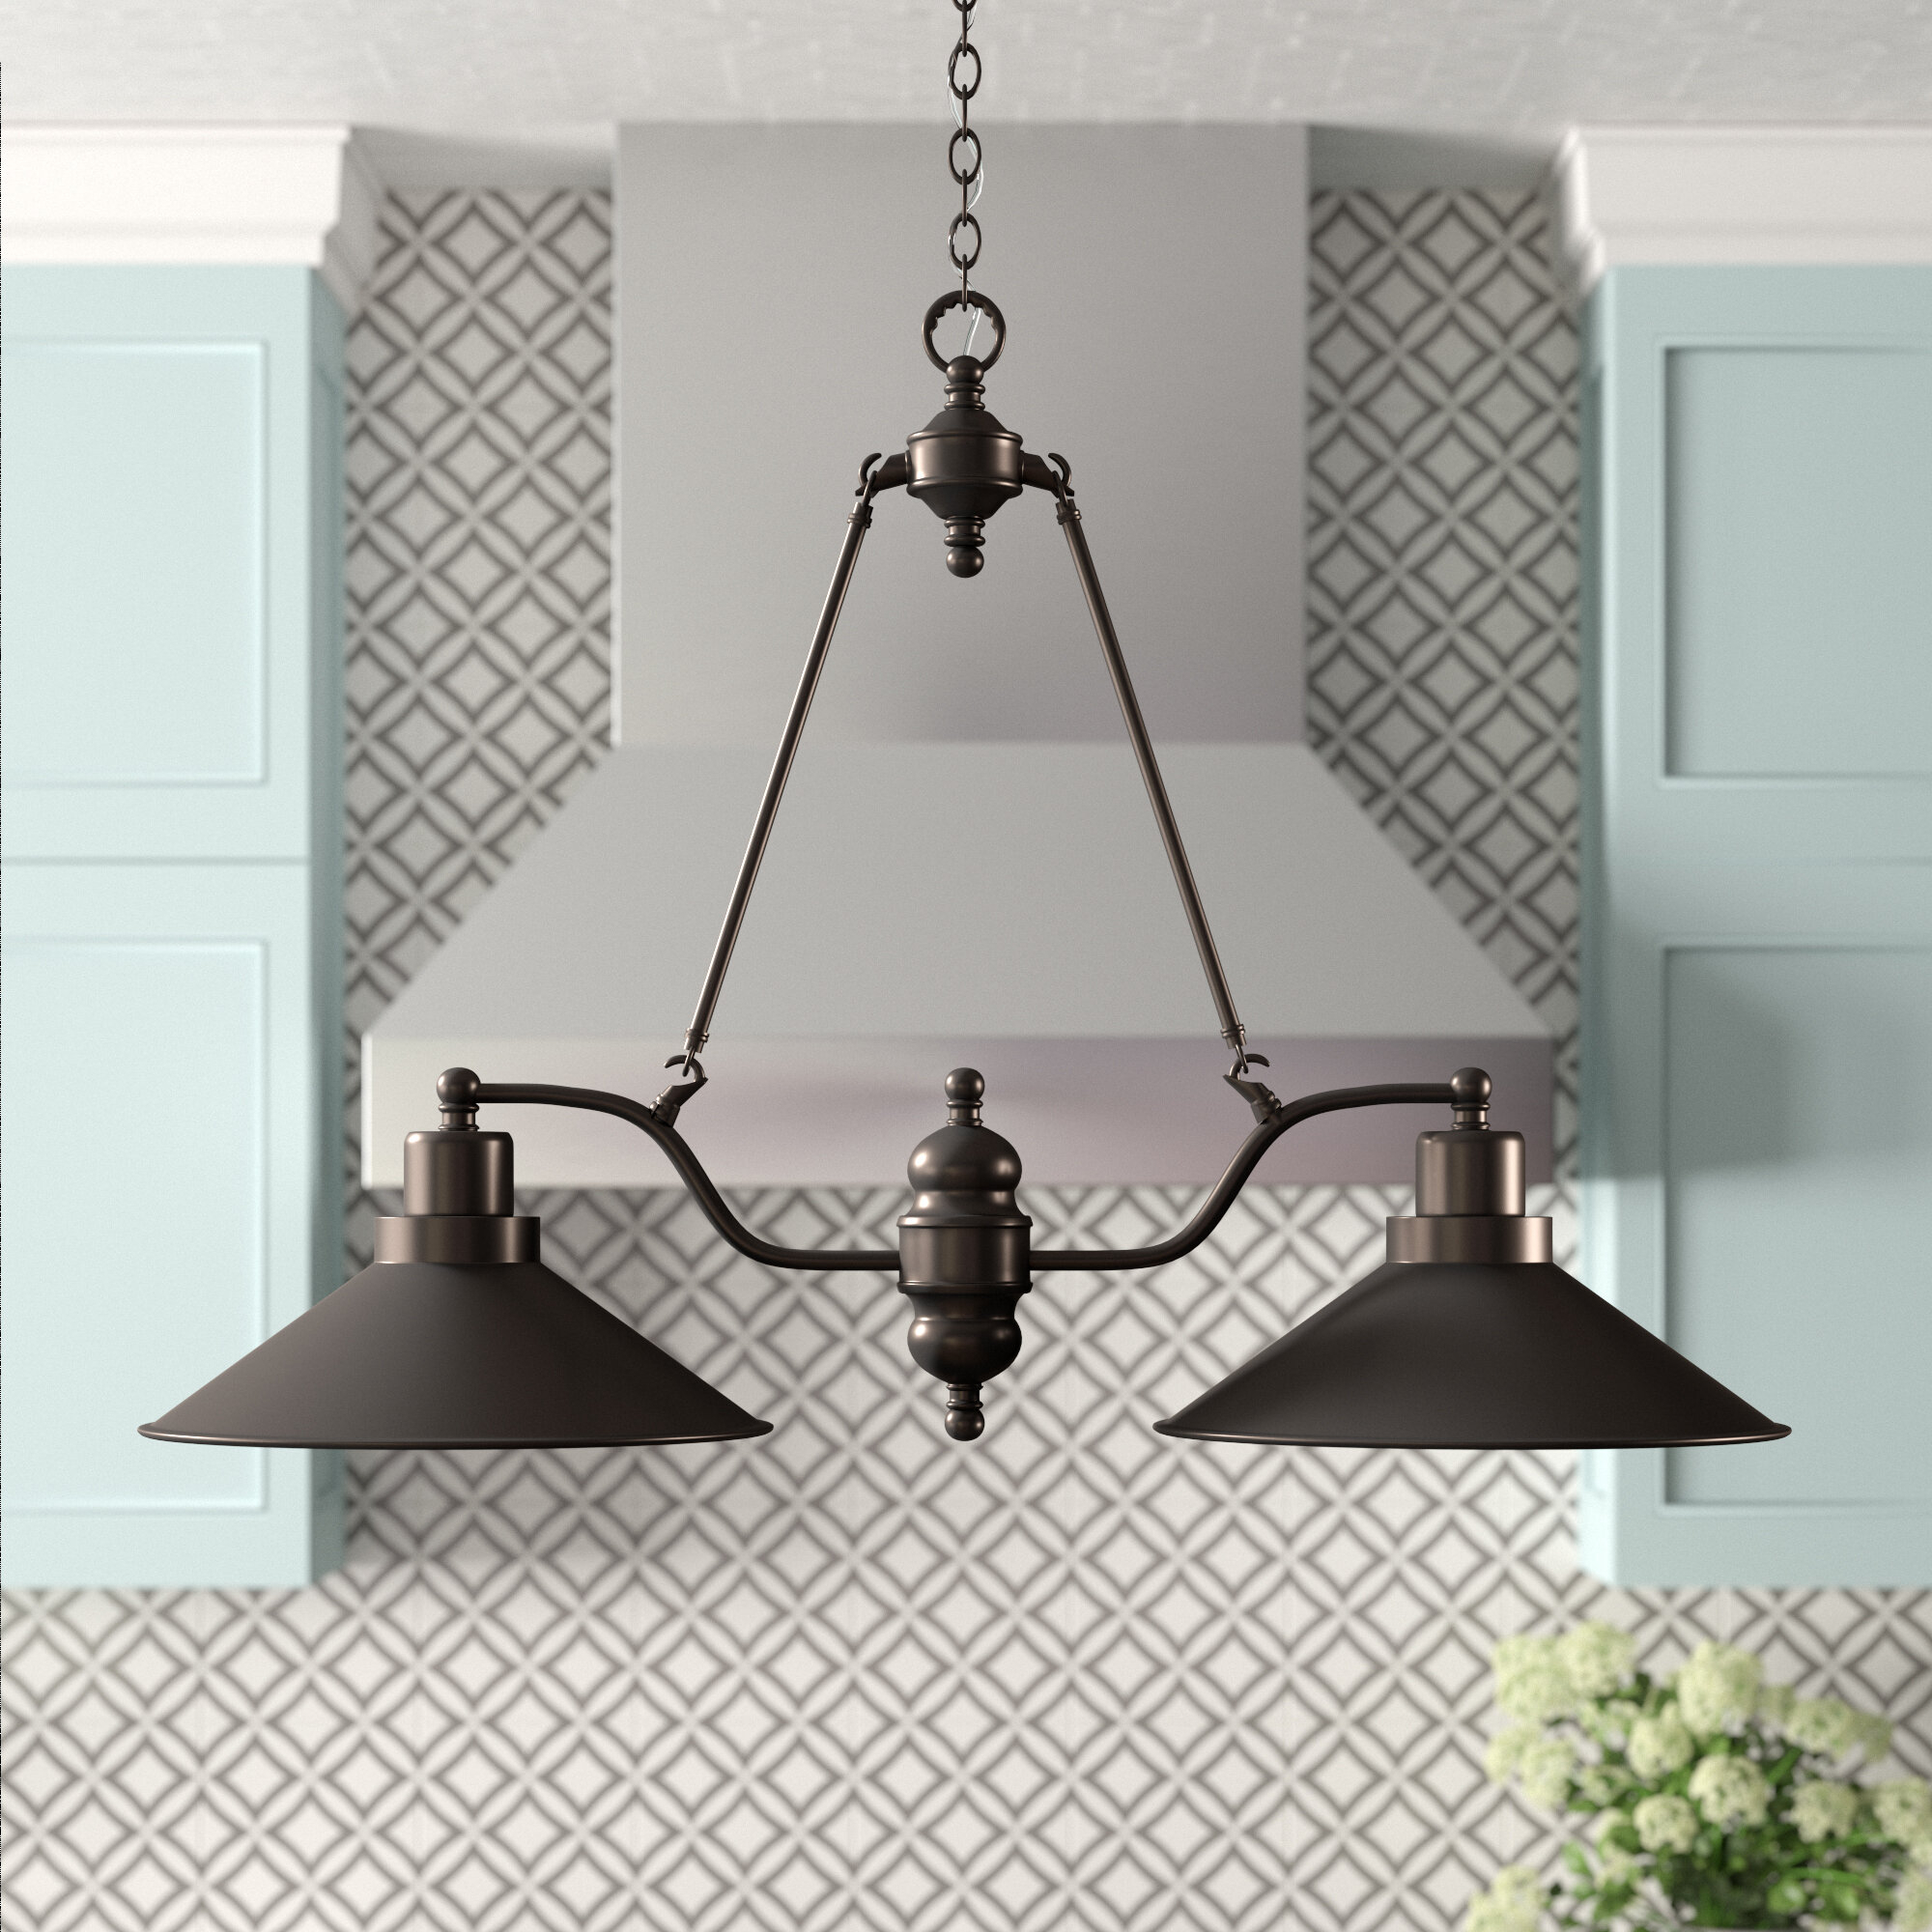 Euclid 2 Light Kitchen Island Linear Pendant With Regard To Cinchring 1 Light Cone Pendants (View 17 of 30)